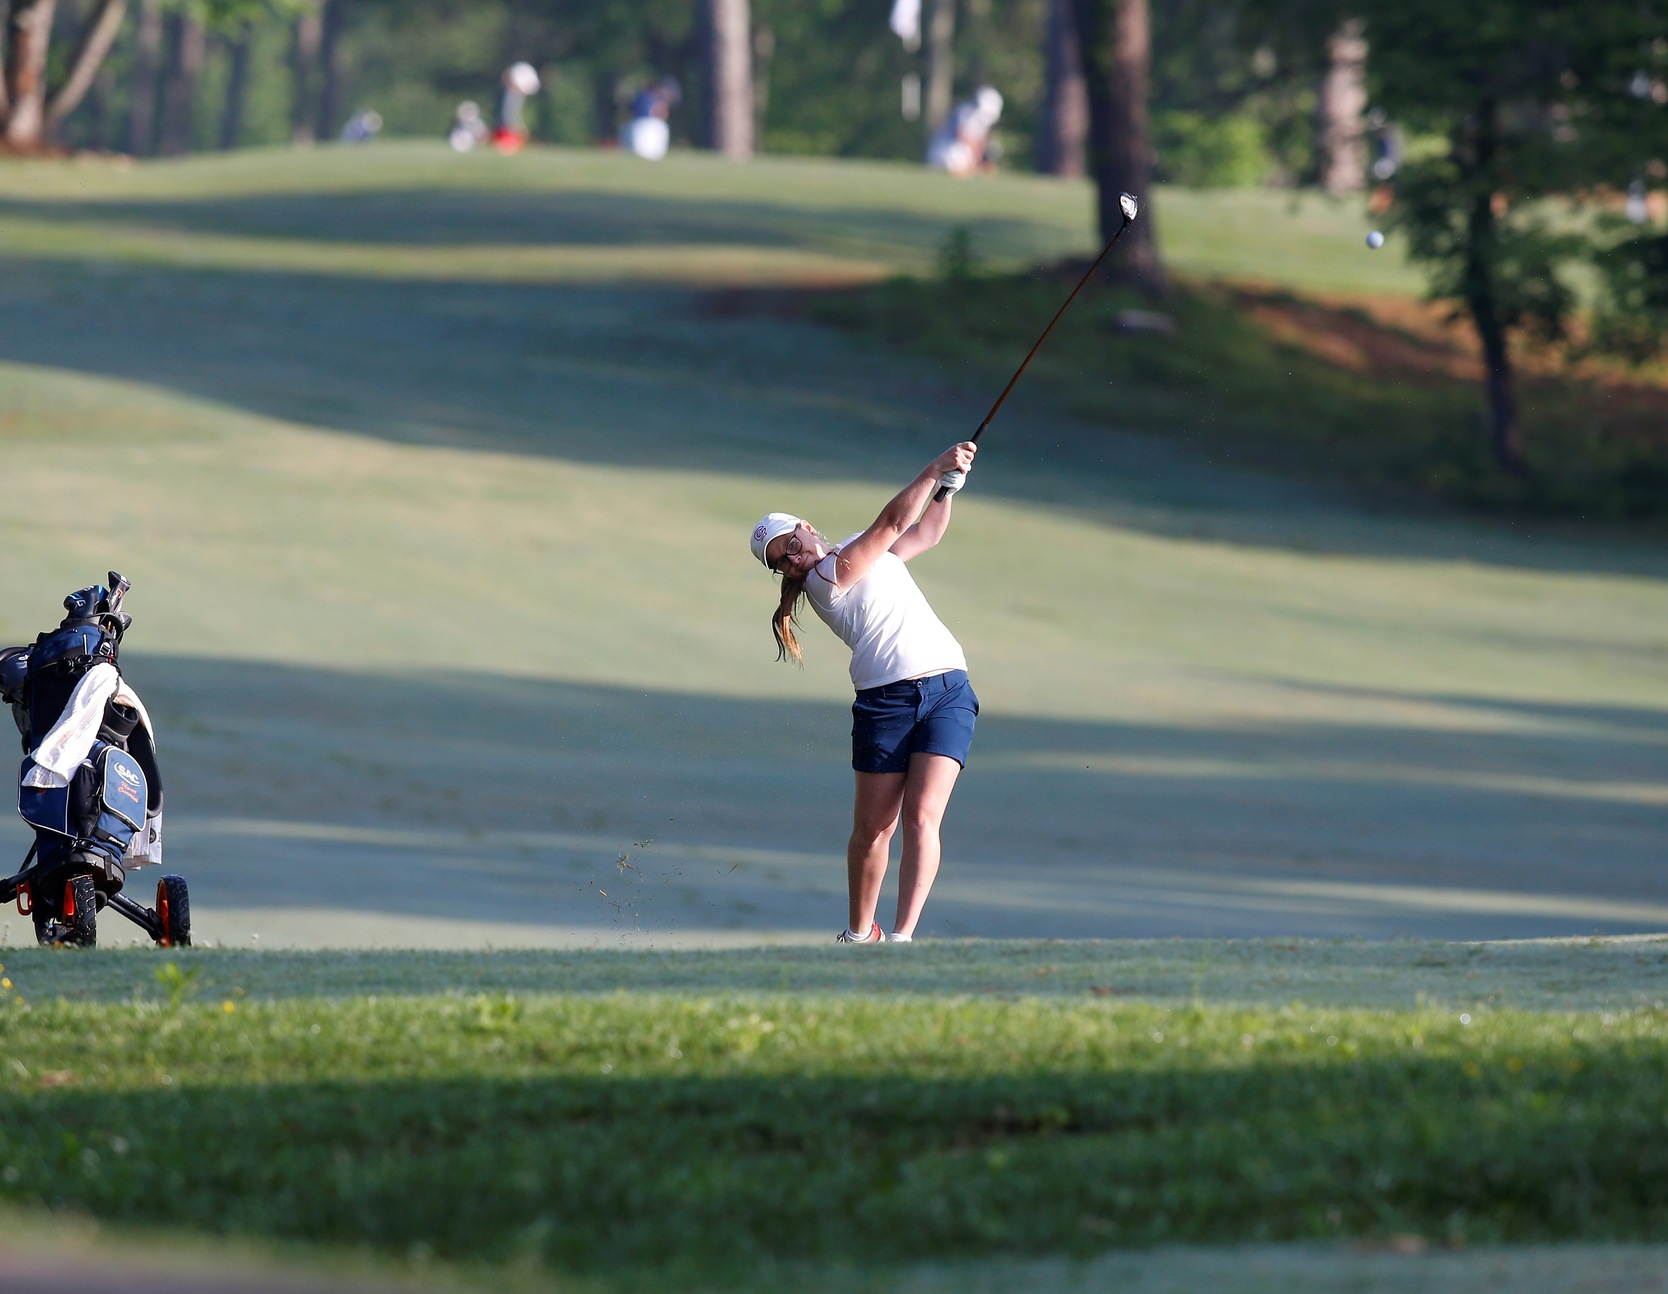 Five-over day sends Cummins into tie for 26th at South Regional